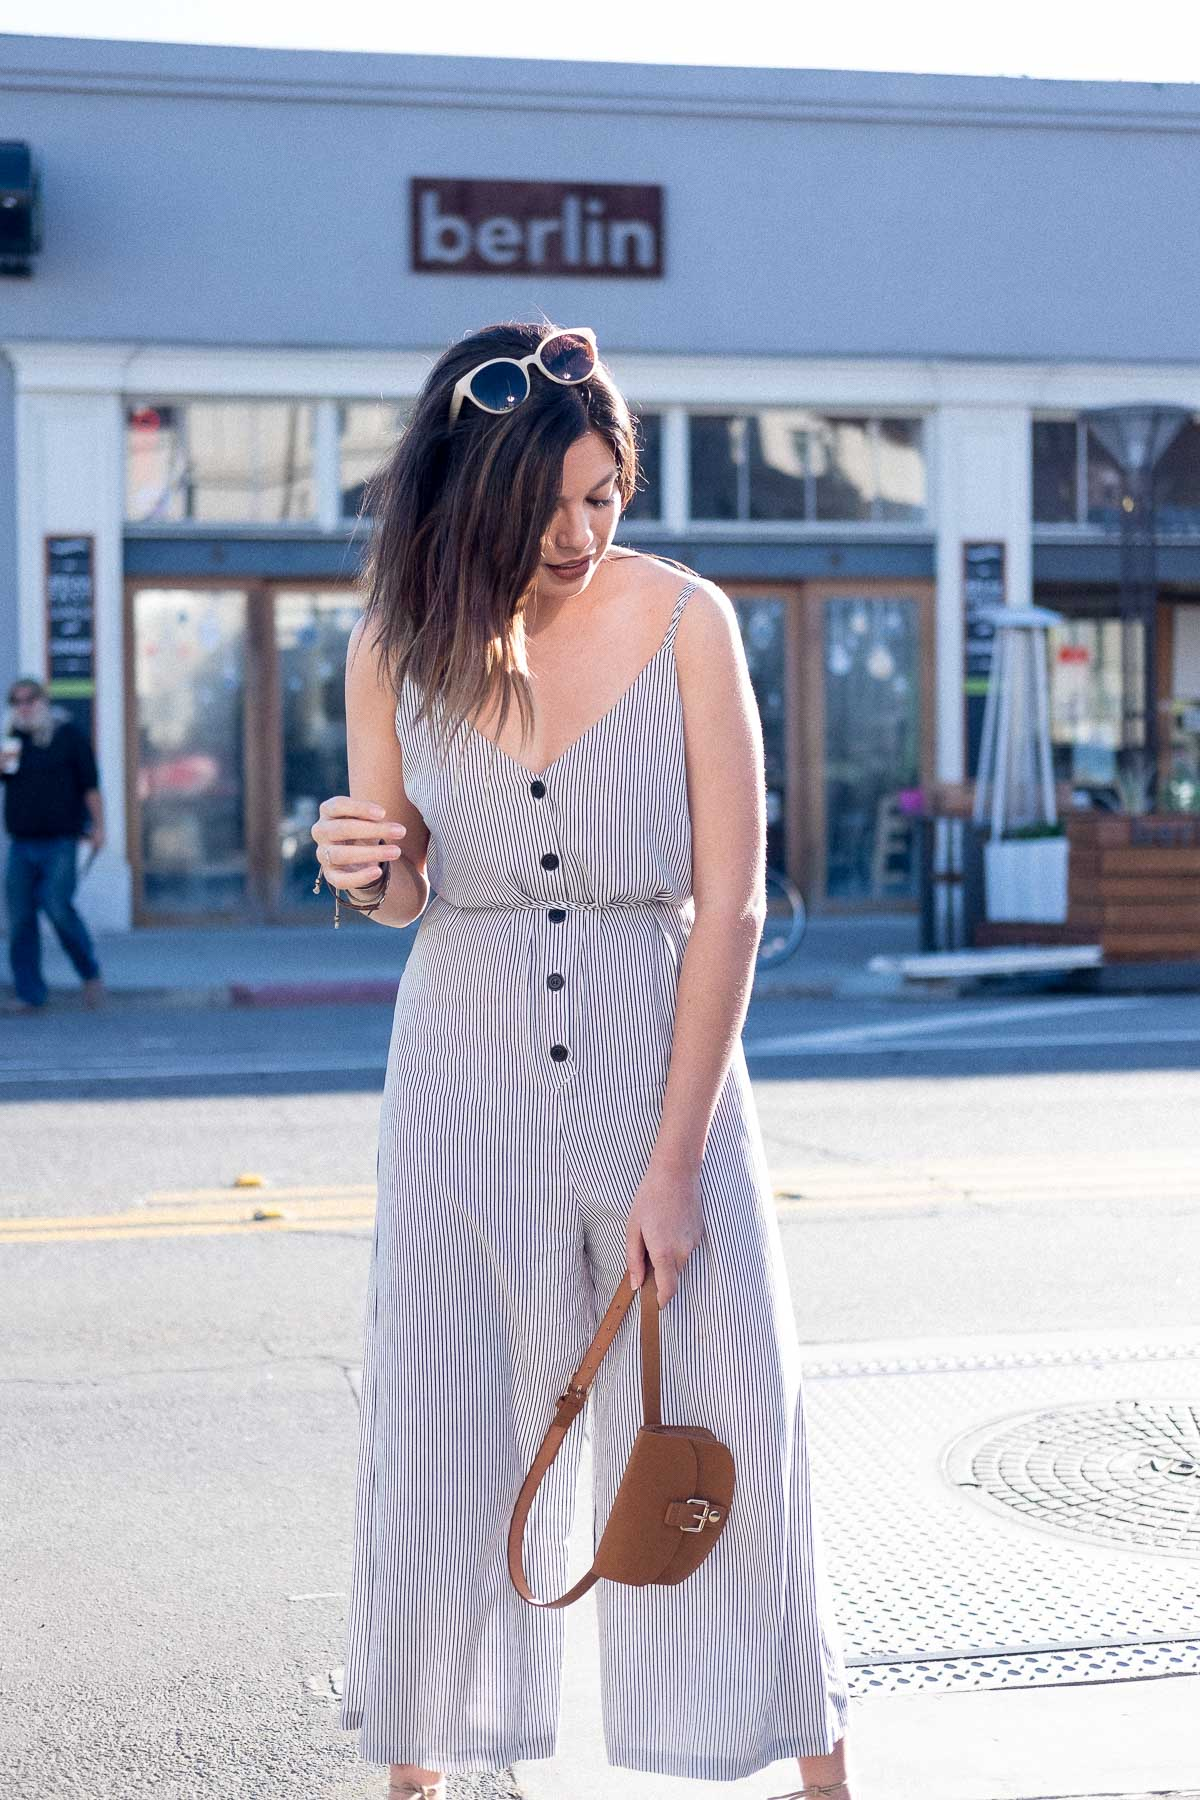 Rachel Off Duty: How to Start Networking - Jumpsuit Outfit 2